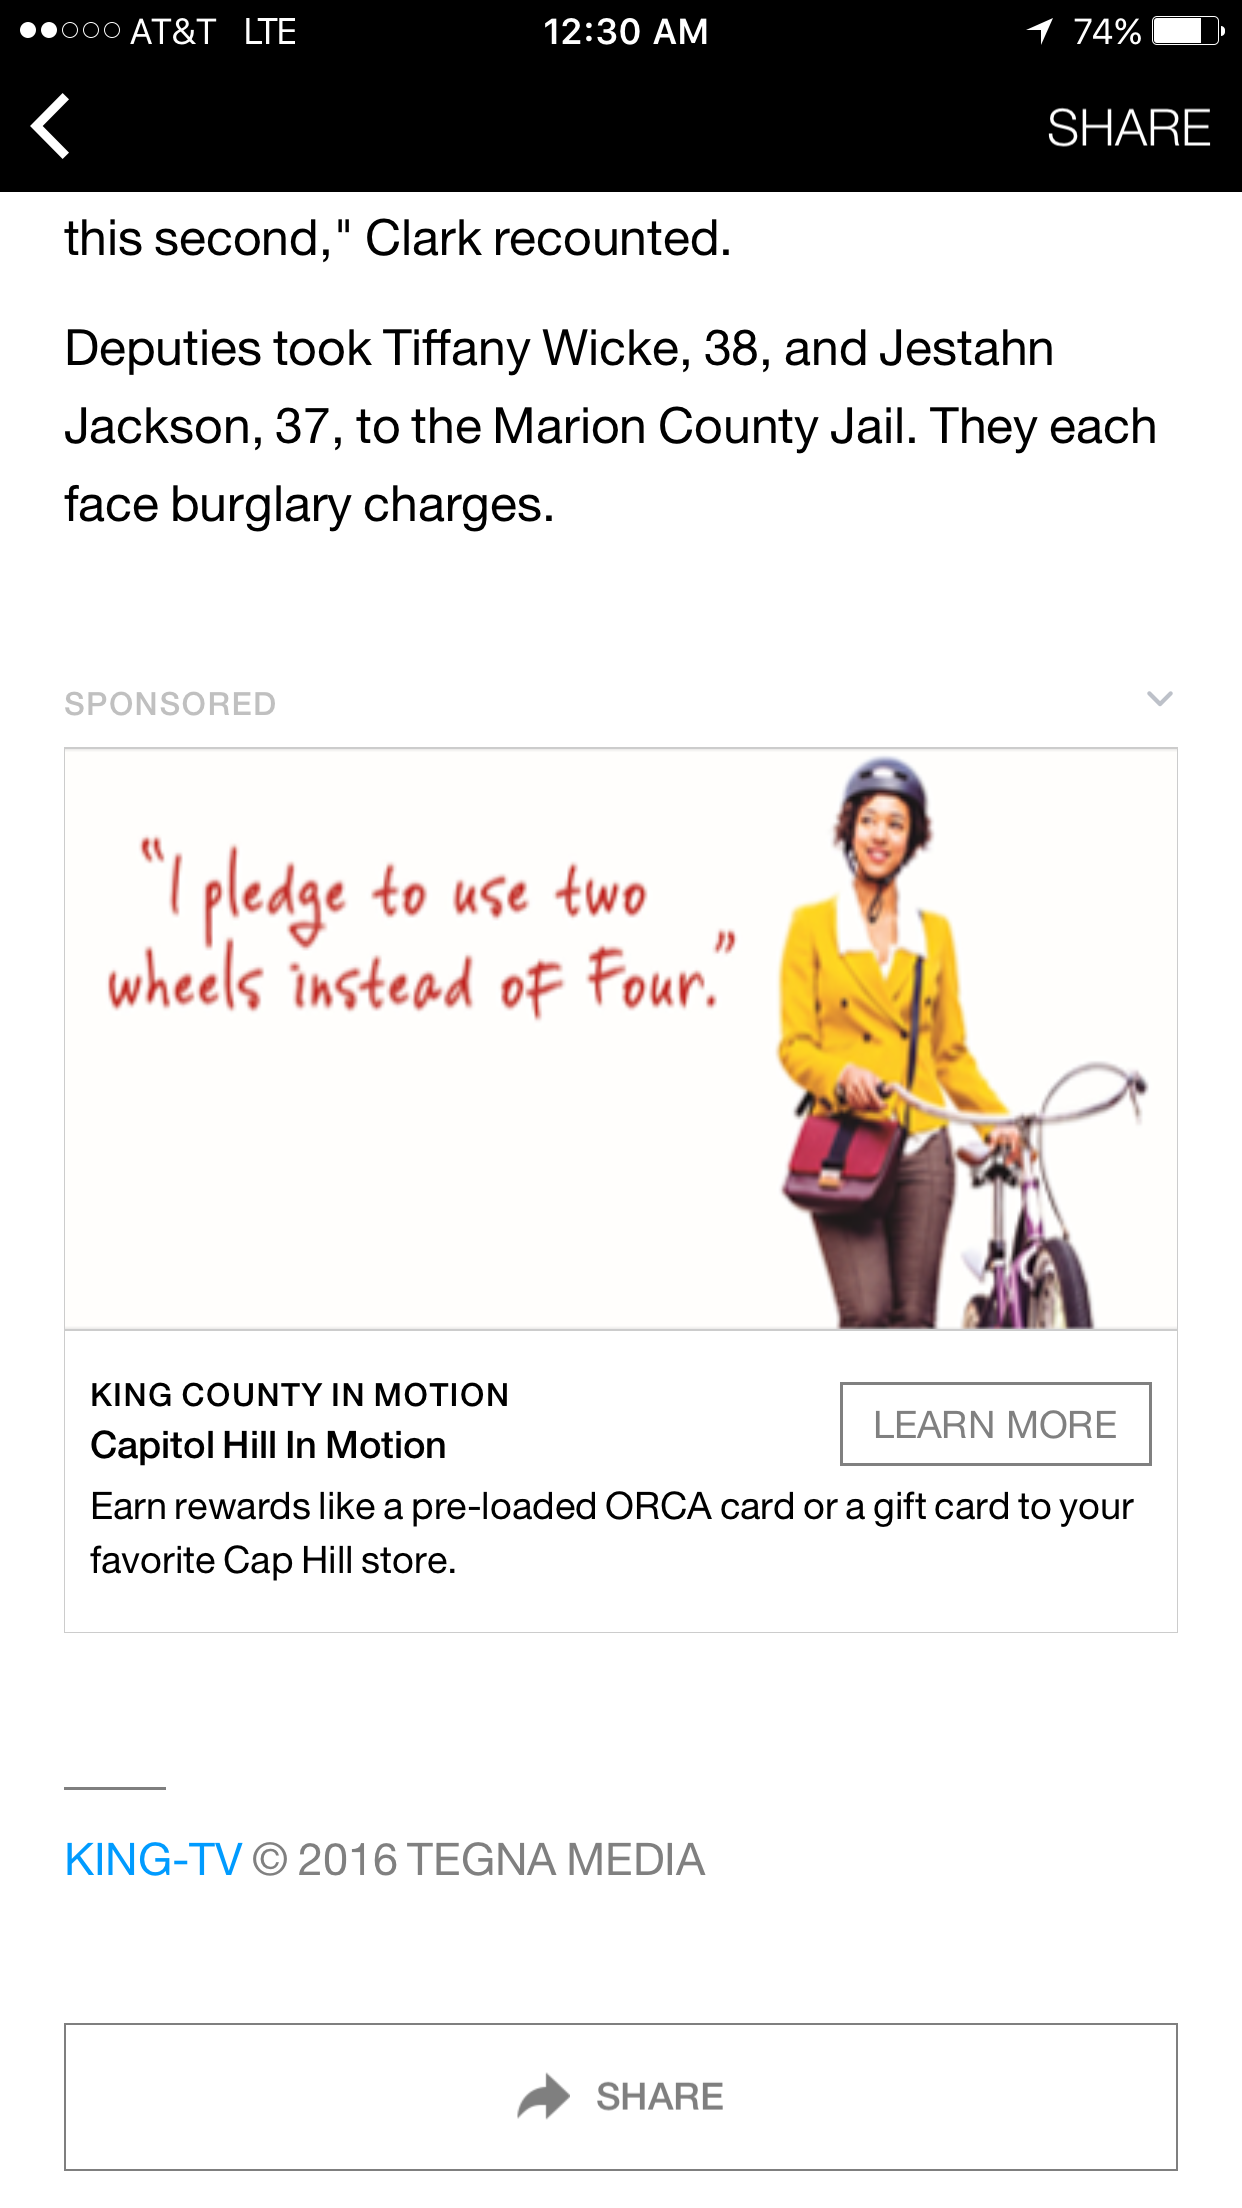 Three rounds of geo-targeted Facebook ads kept the campaign fresh